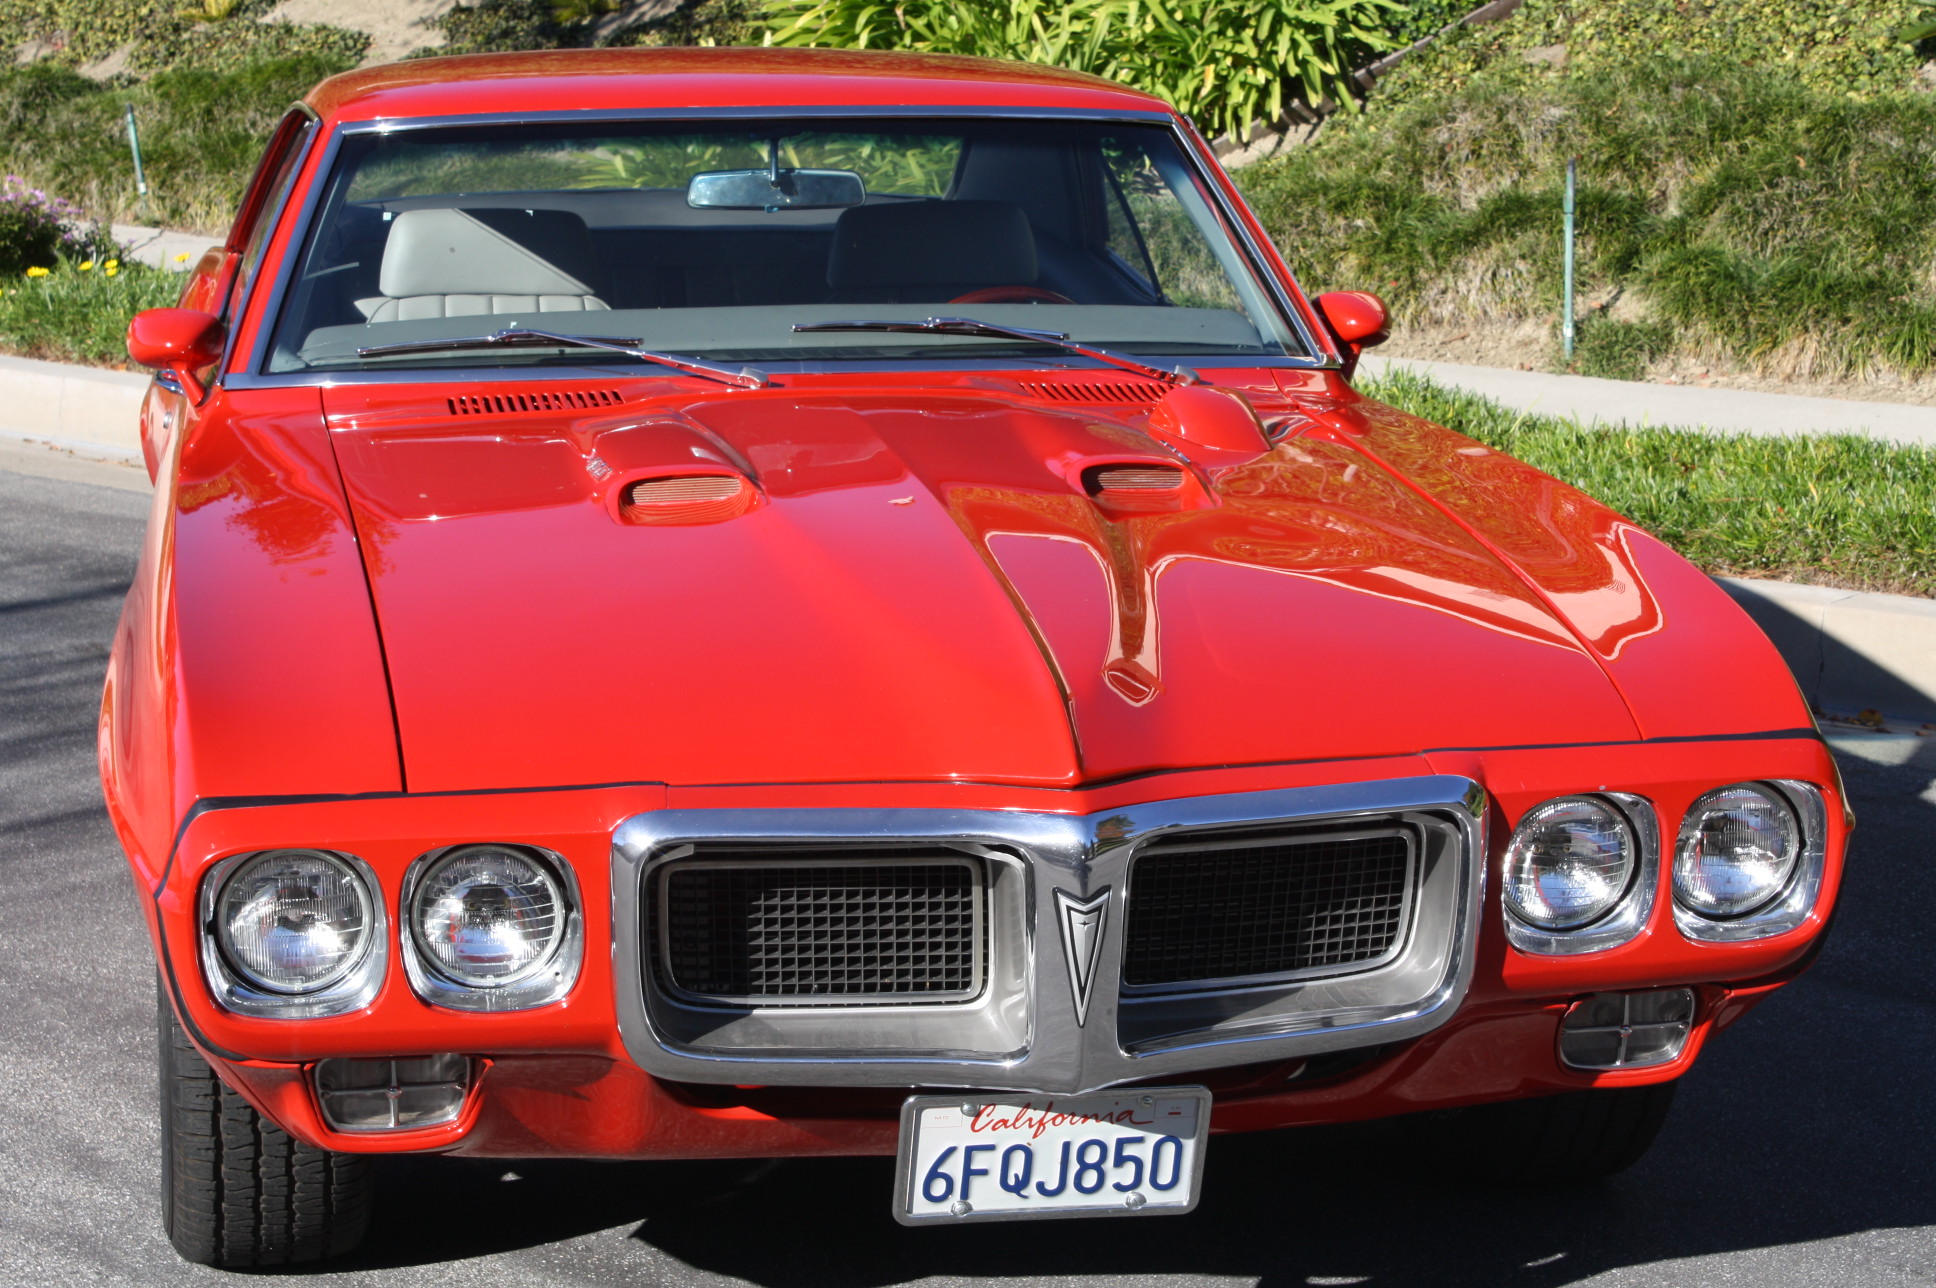 Off Lease Cars >> 1969 FIREBIRD 400 | The Vault Classic Cars